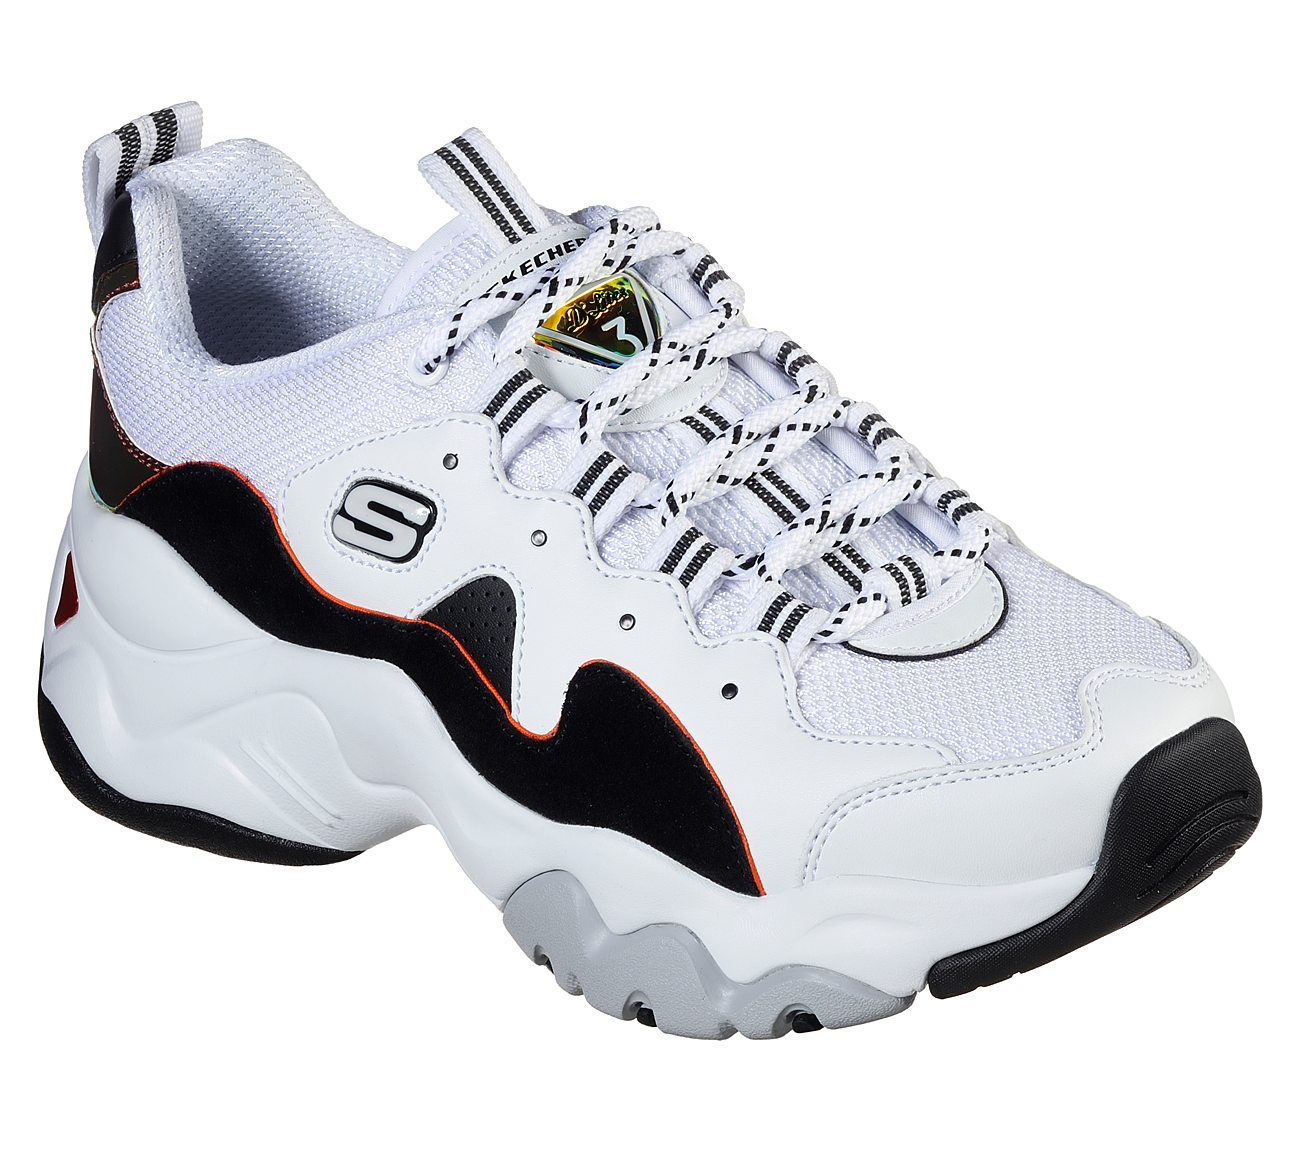 Buy SKECHERS D'Lites 3.0 - Amber